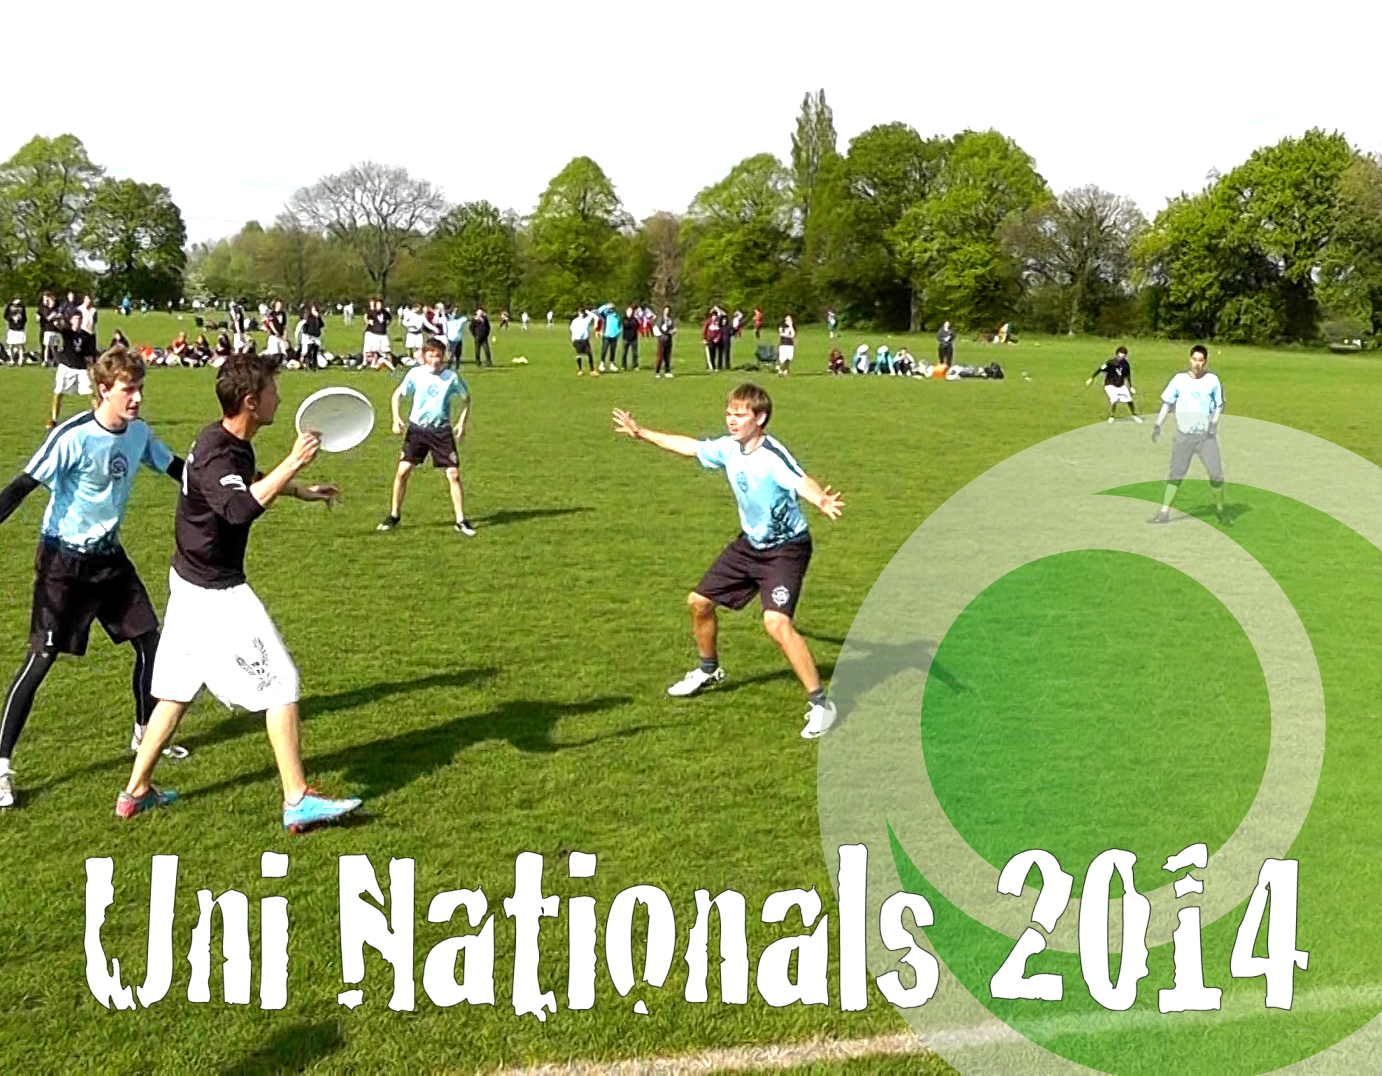 Uni Nationals 2014 Subscription